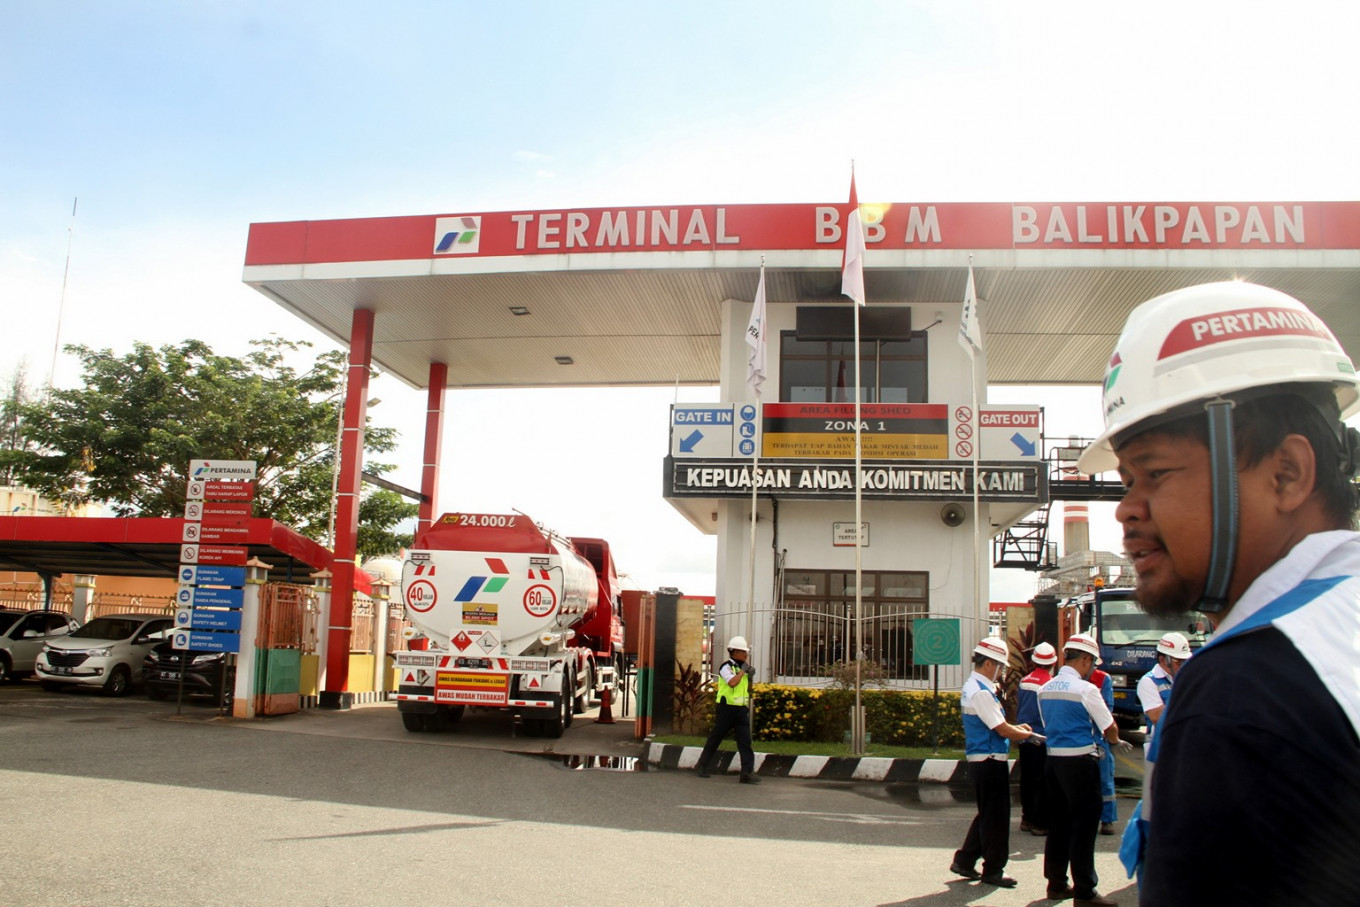 Govt owes Pertamina Rp96.5t for three years of fuel subsidies